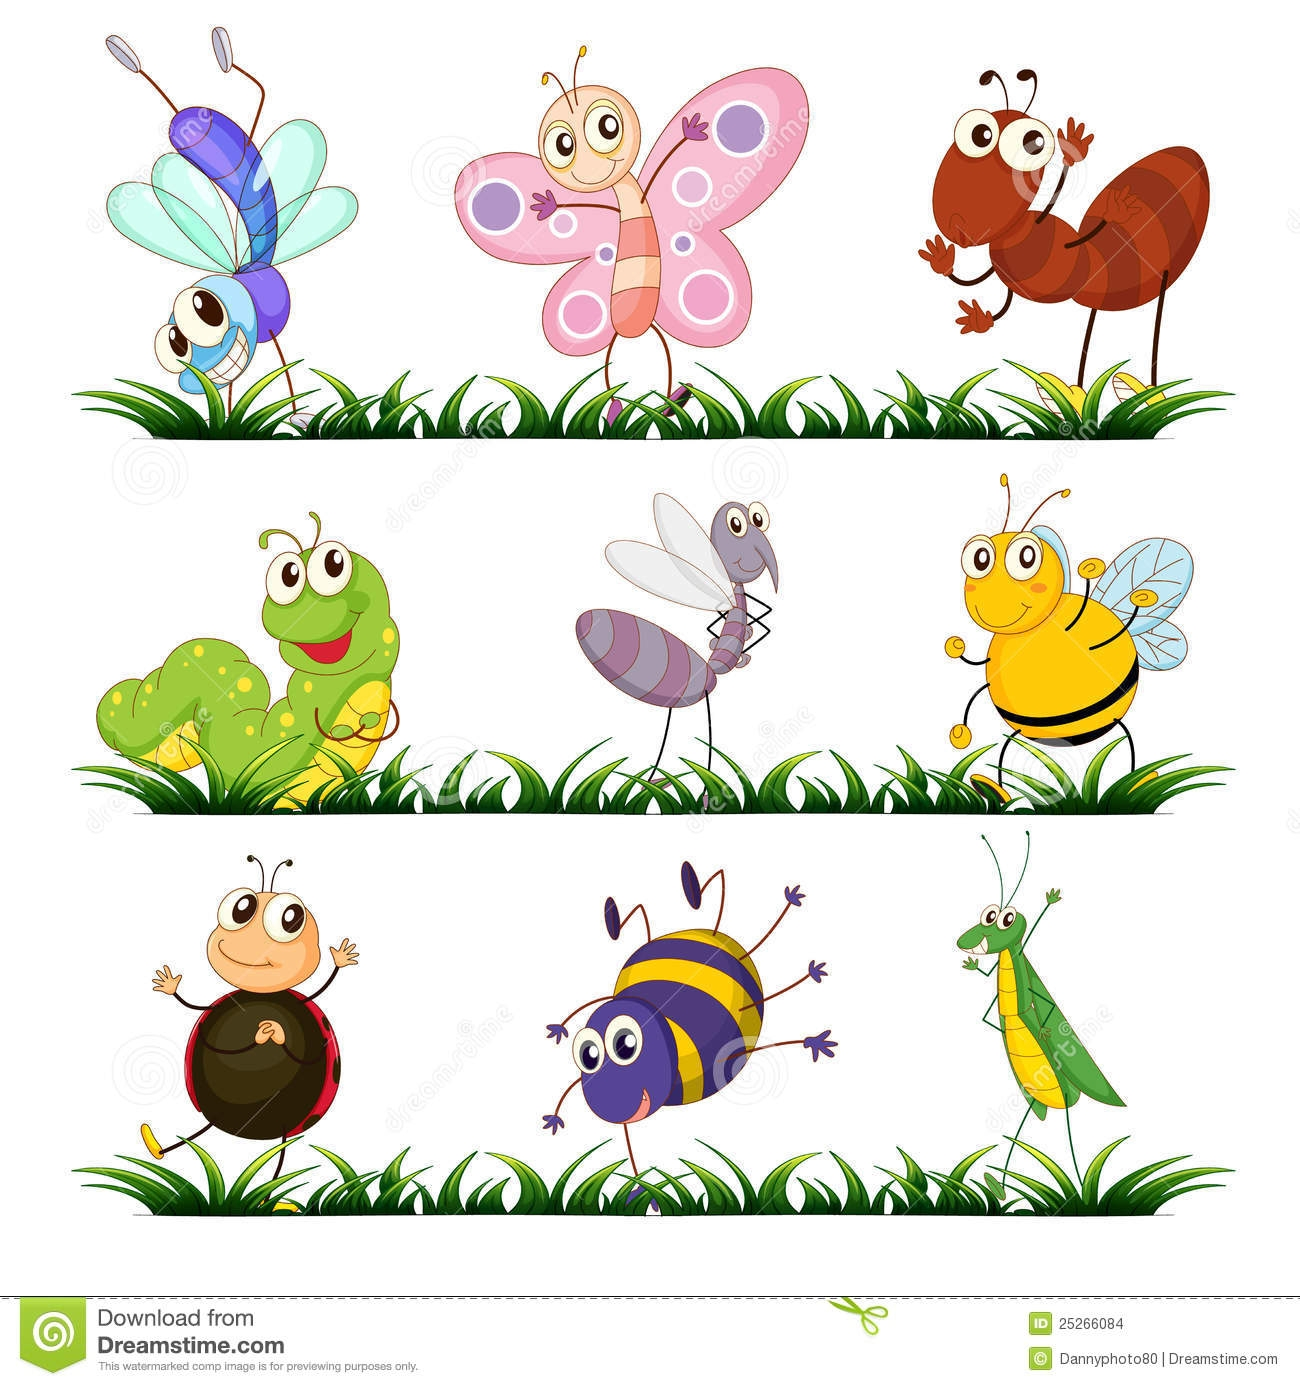 Unique design digital collection. Insects clipart